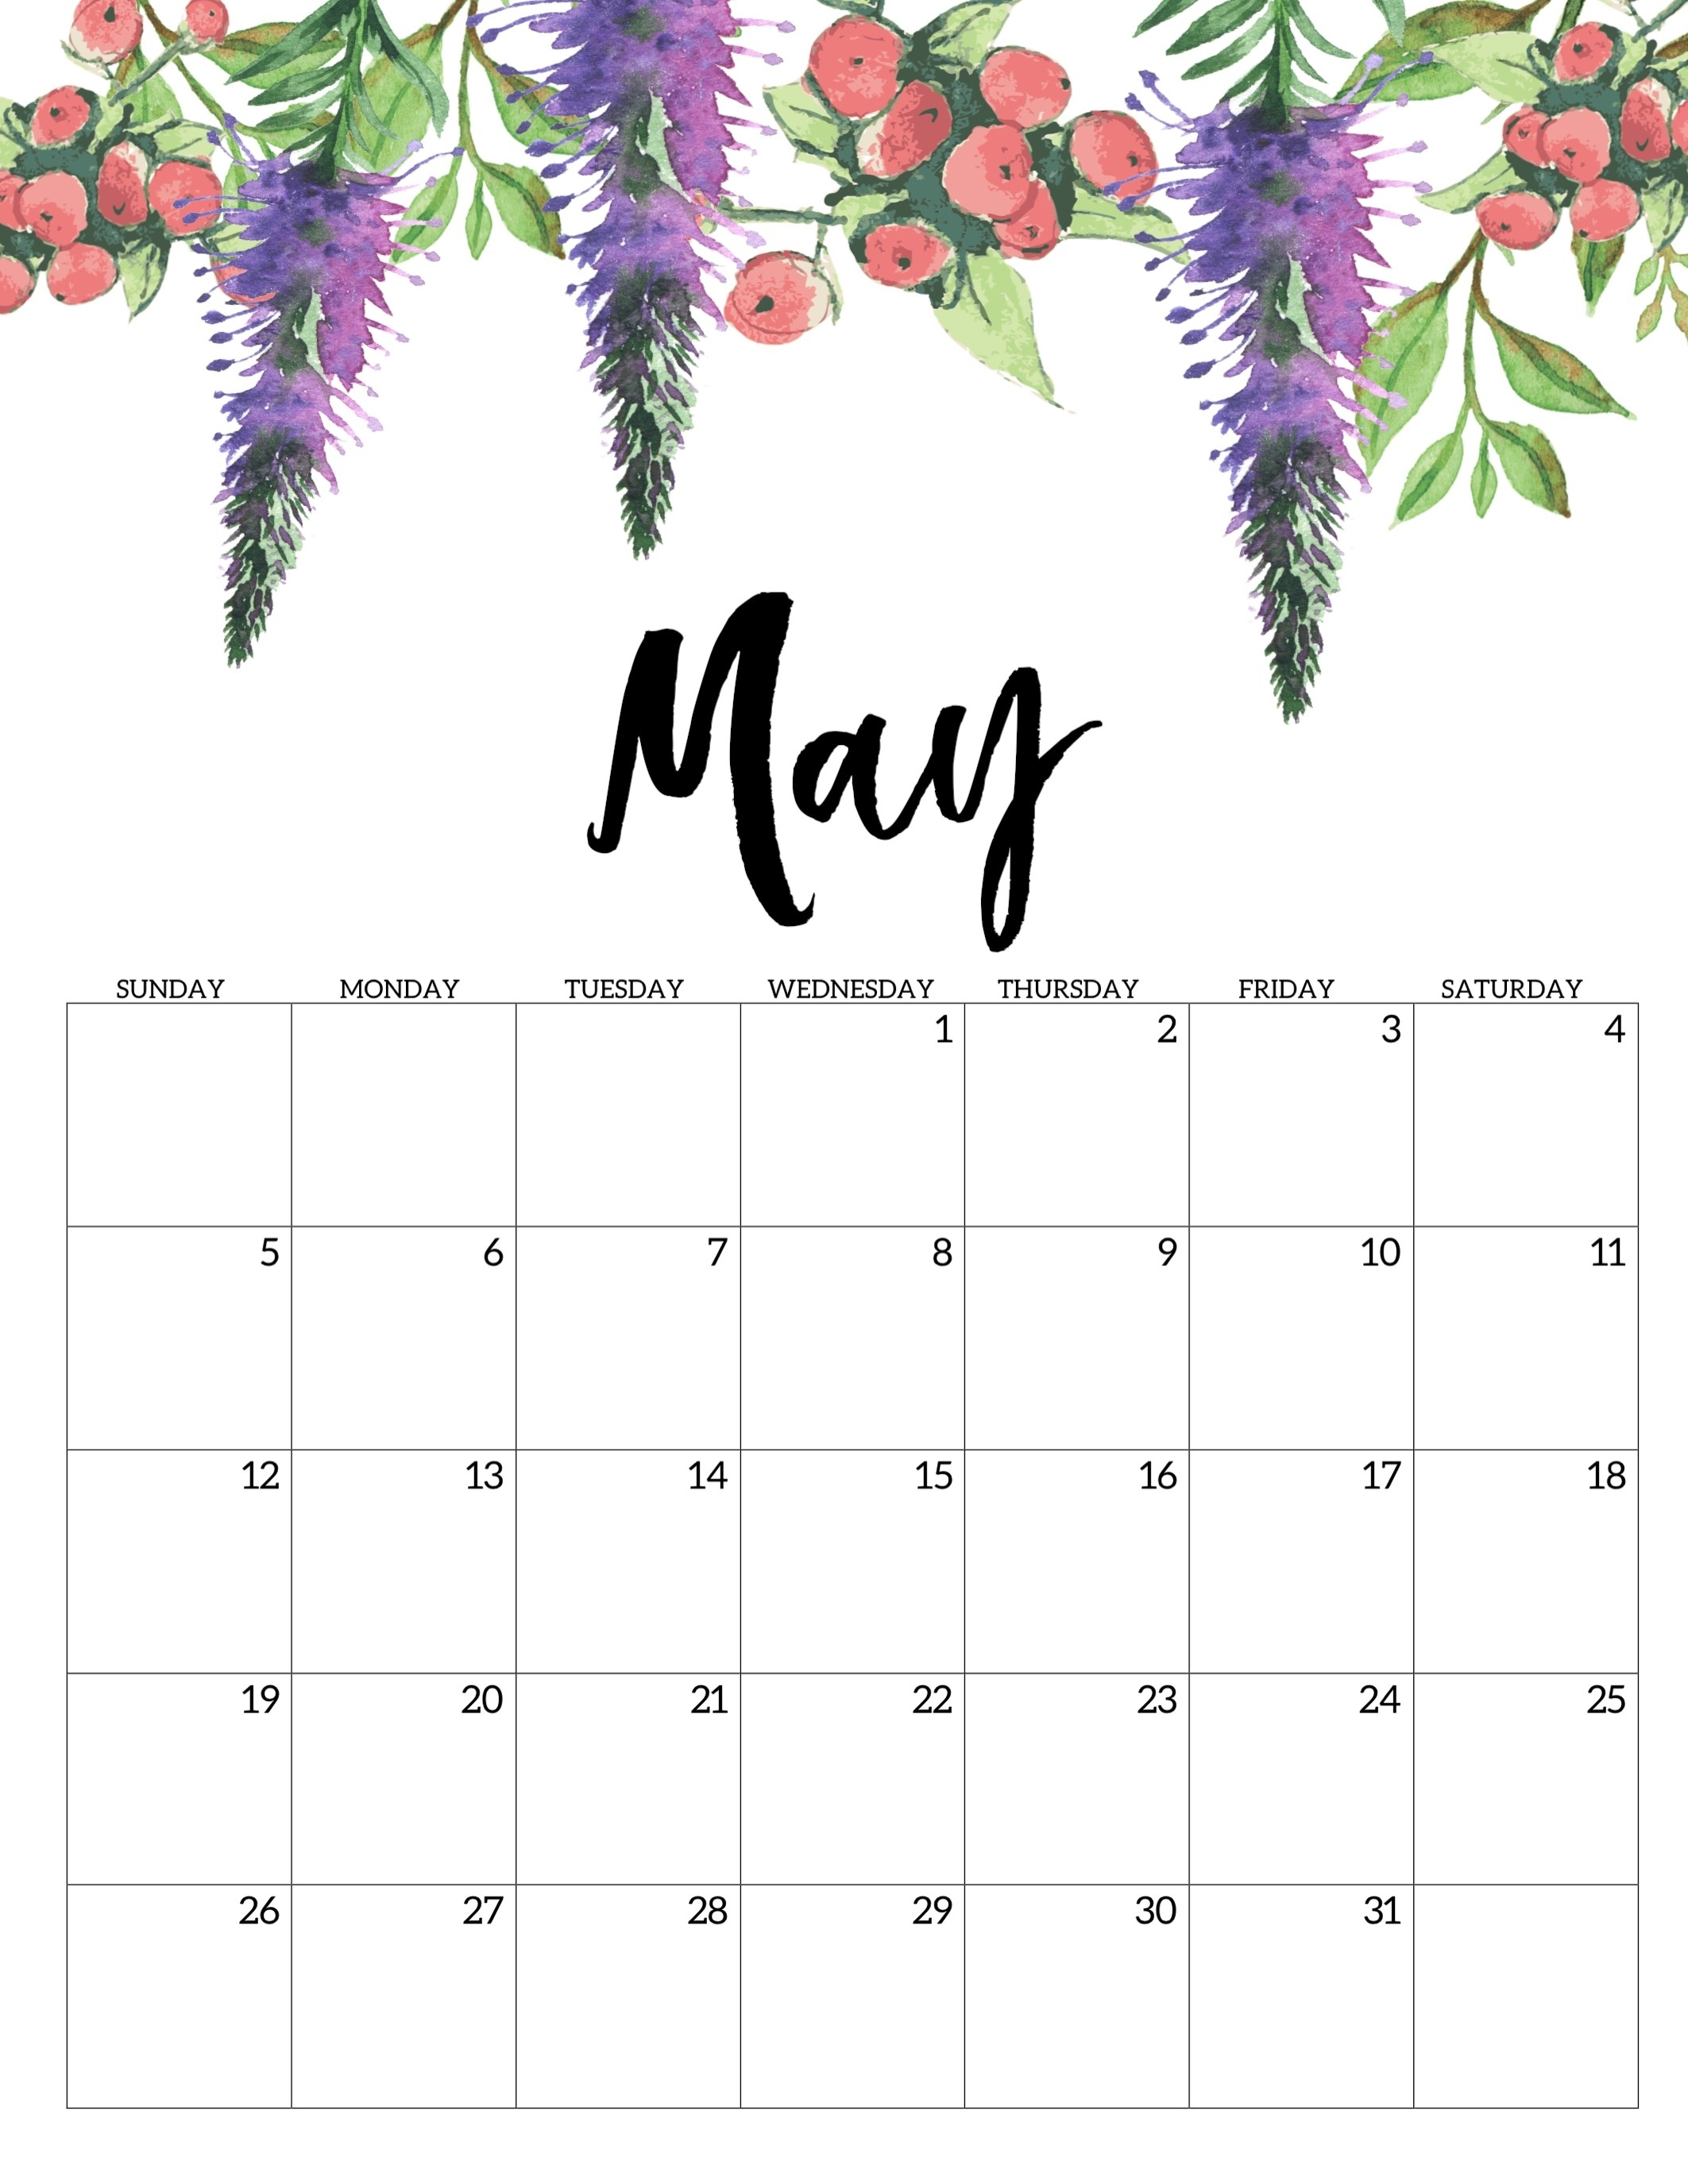 Free Printable Calendar 2019 - Floral - Paper Trail Design inside Frame Birthday Calendar Templates Free